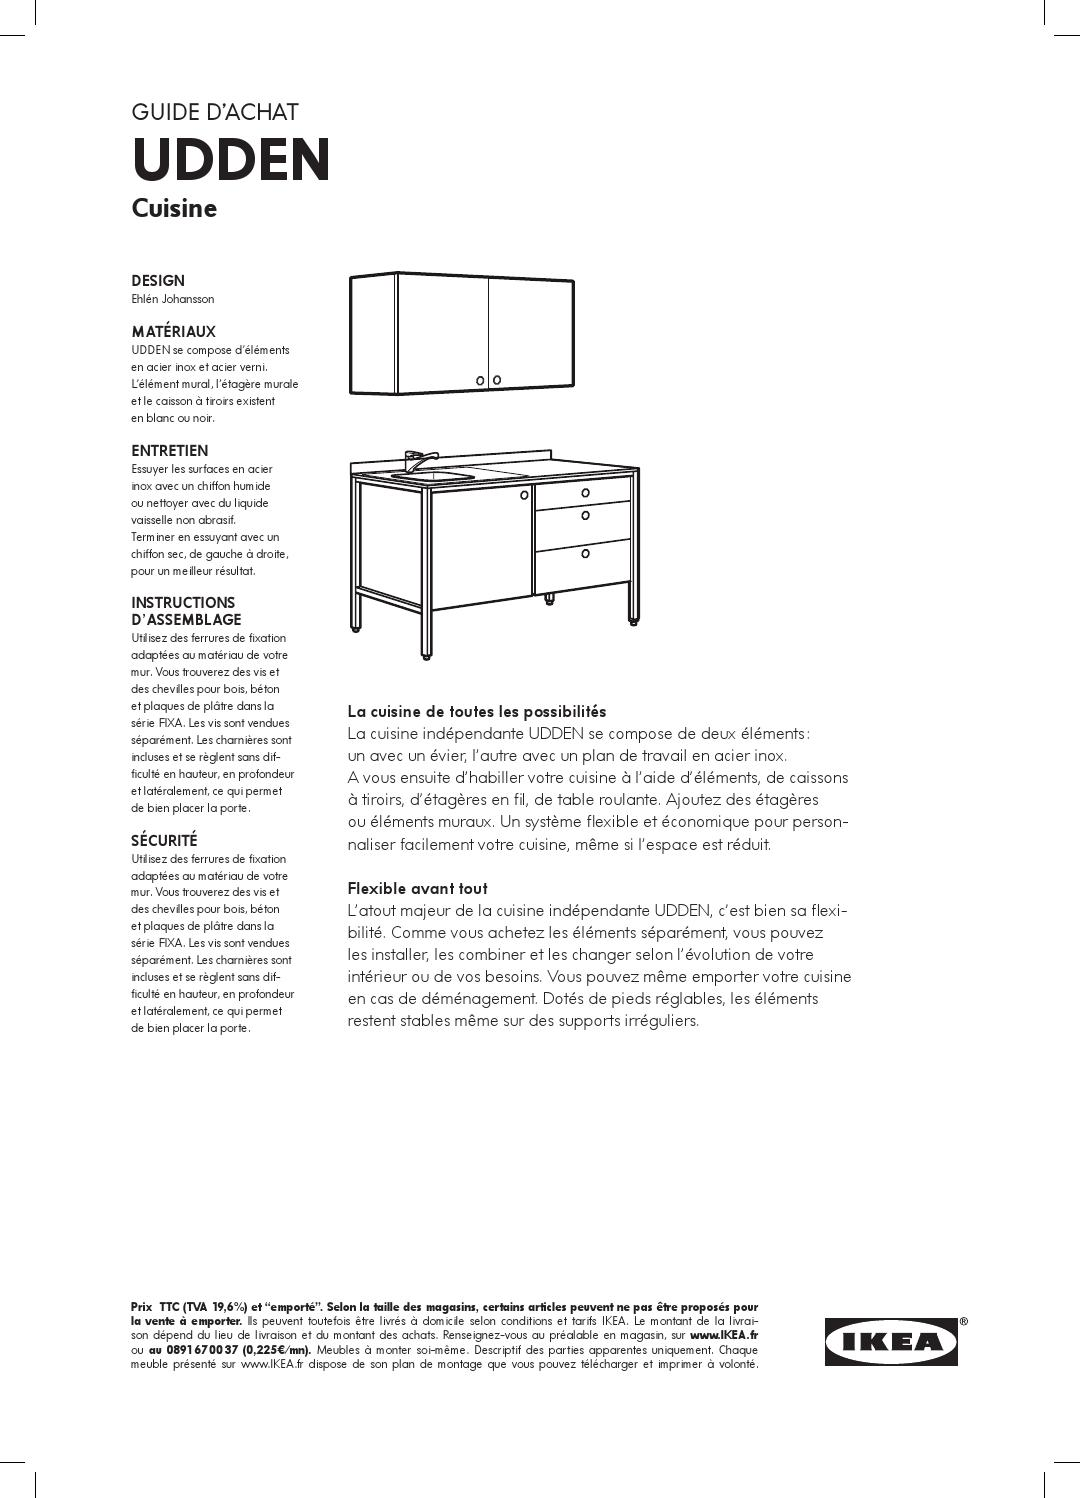 udden ikea fr by ikea catalog issuu. Black Bedroom Furniture Sets. Home Design Ideas